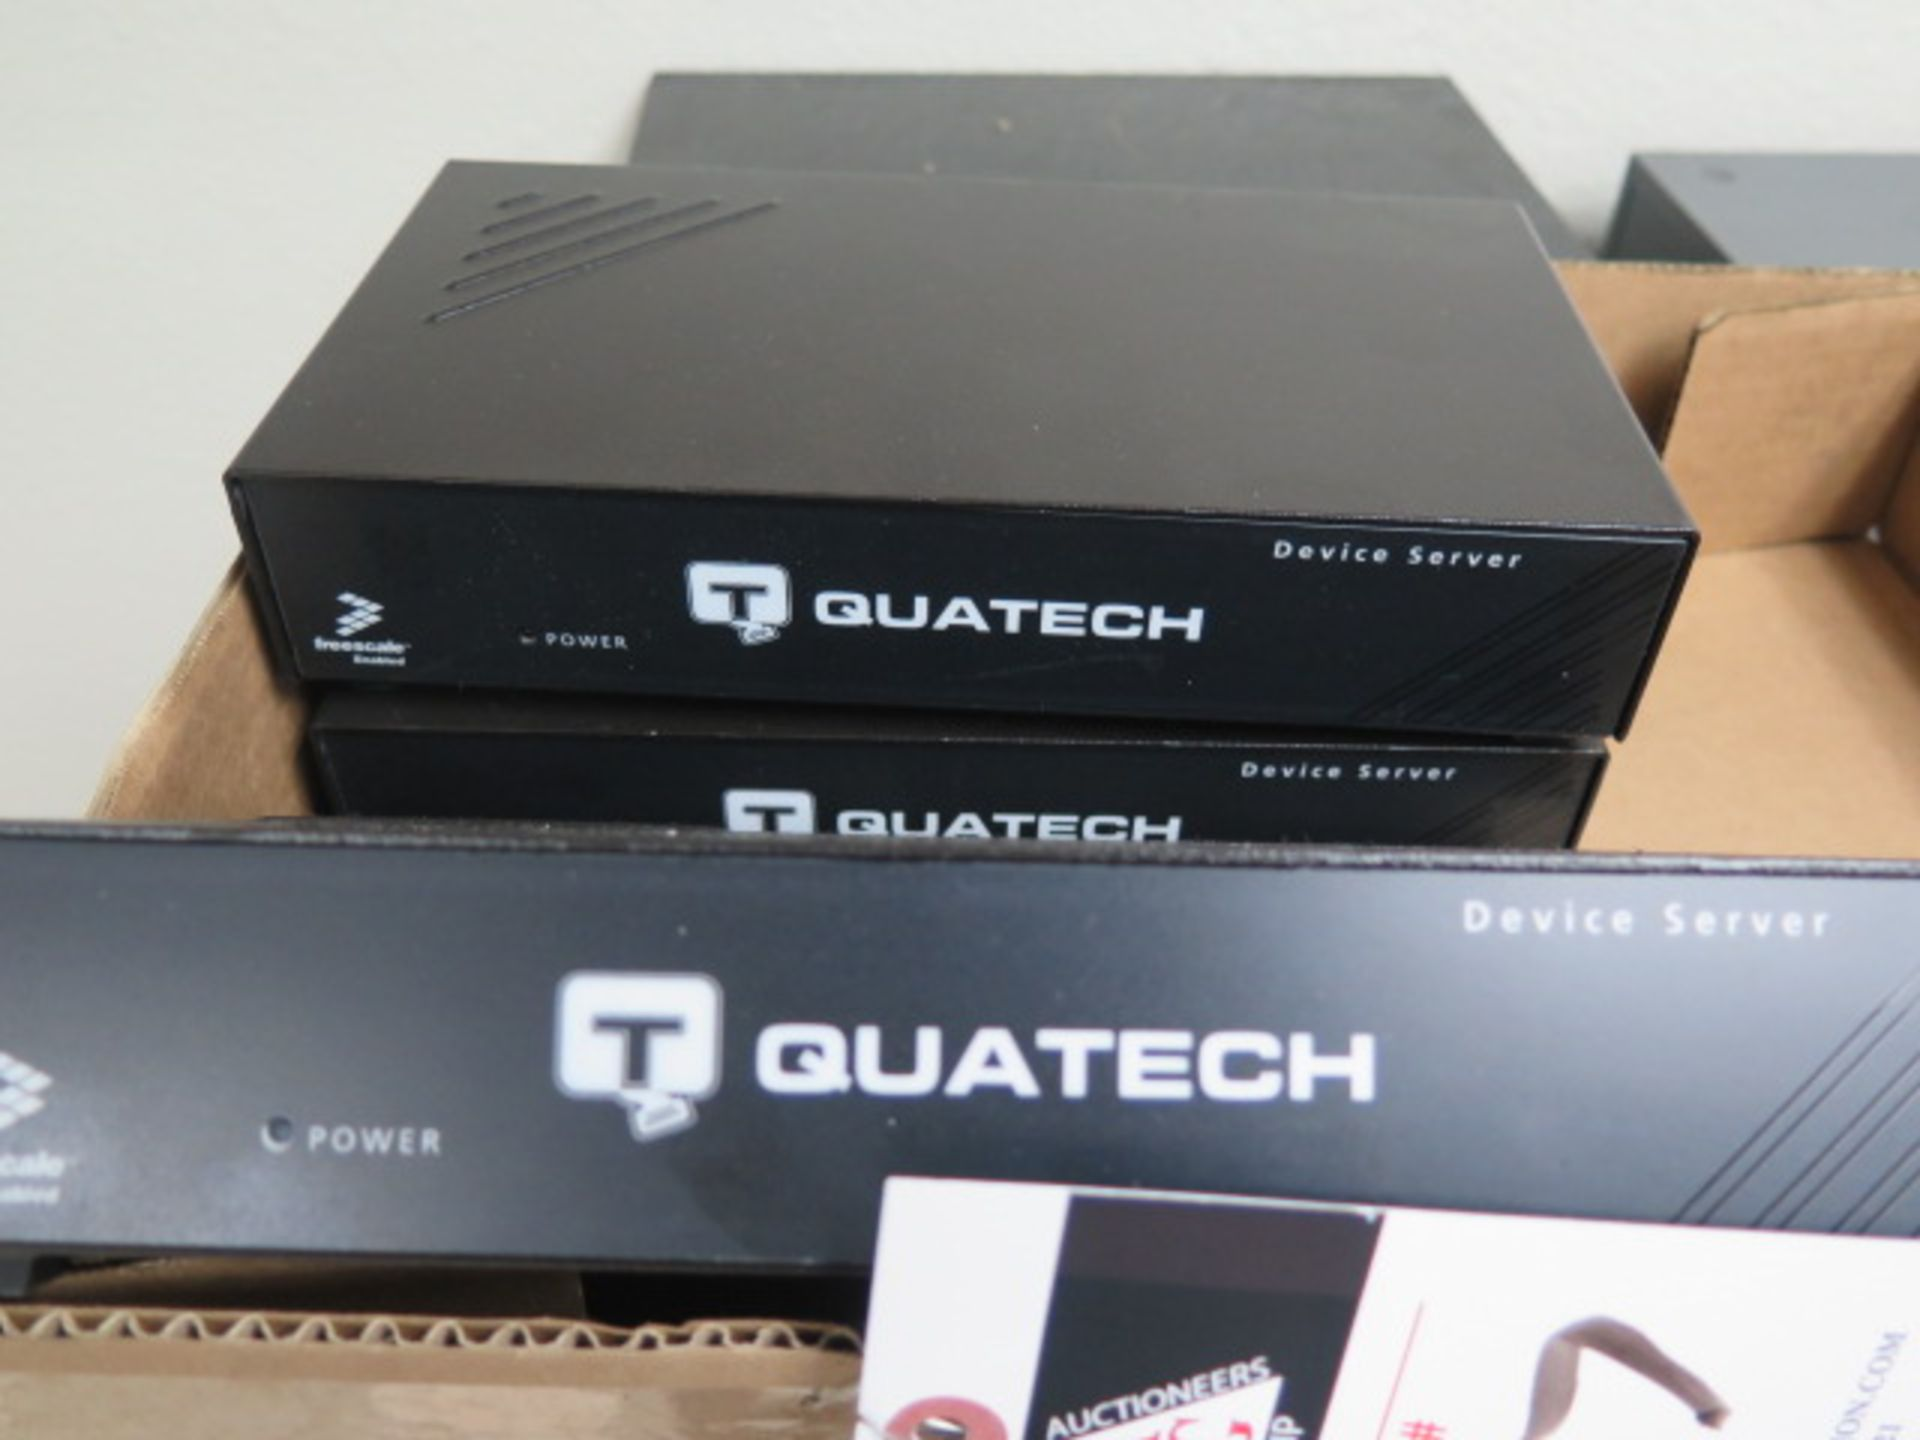 Quatech ESE-100D-SS G Device Servers (3) (SOLD AS-IS - NO WARRANTY) - Image 3 of 5